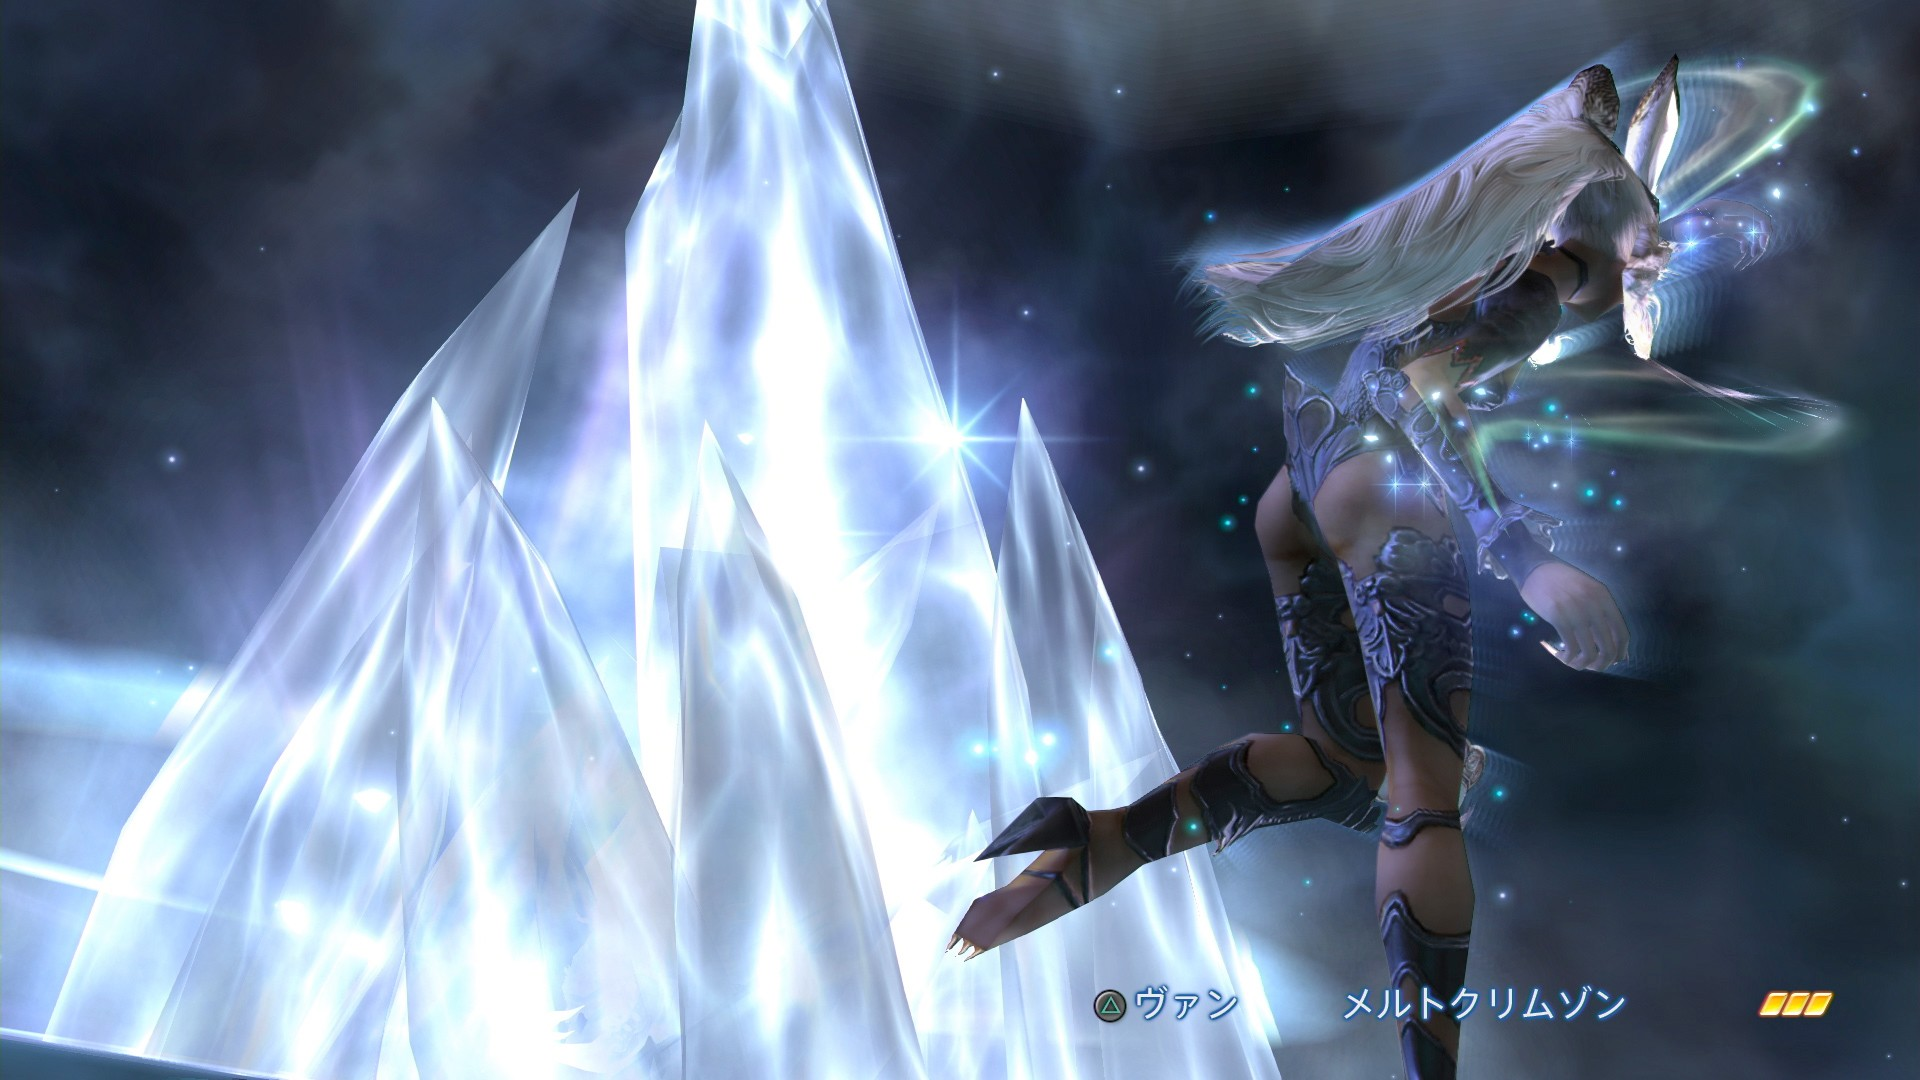 Community Wednesdays: Vote For Your Favorite Final Fantasy Game